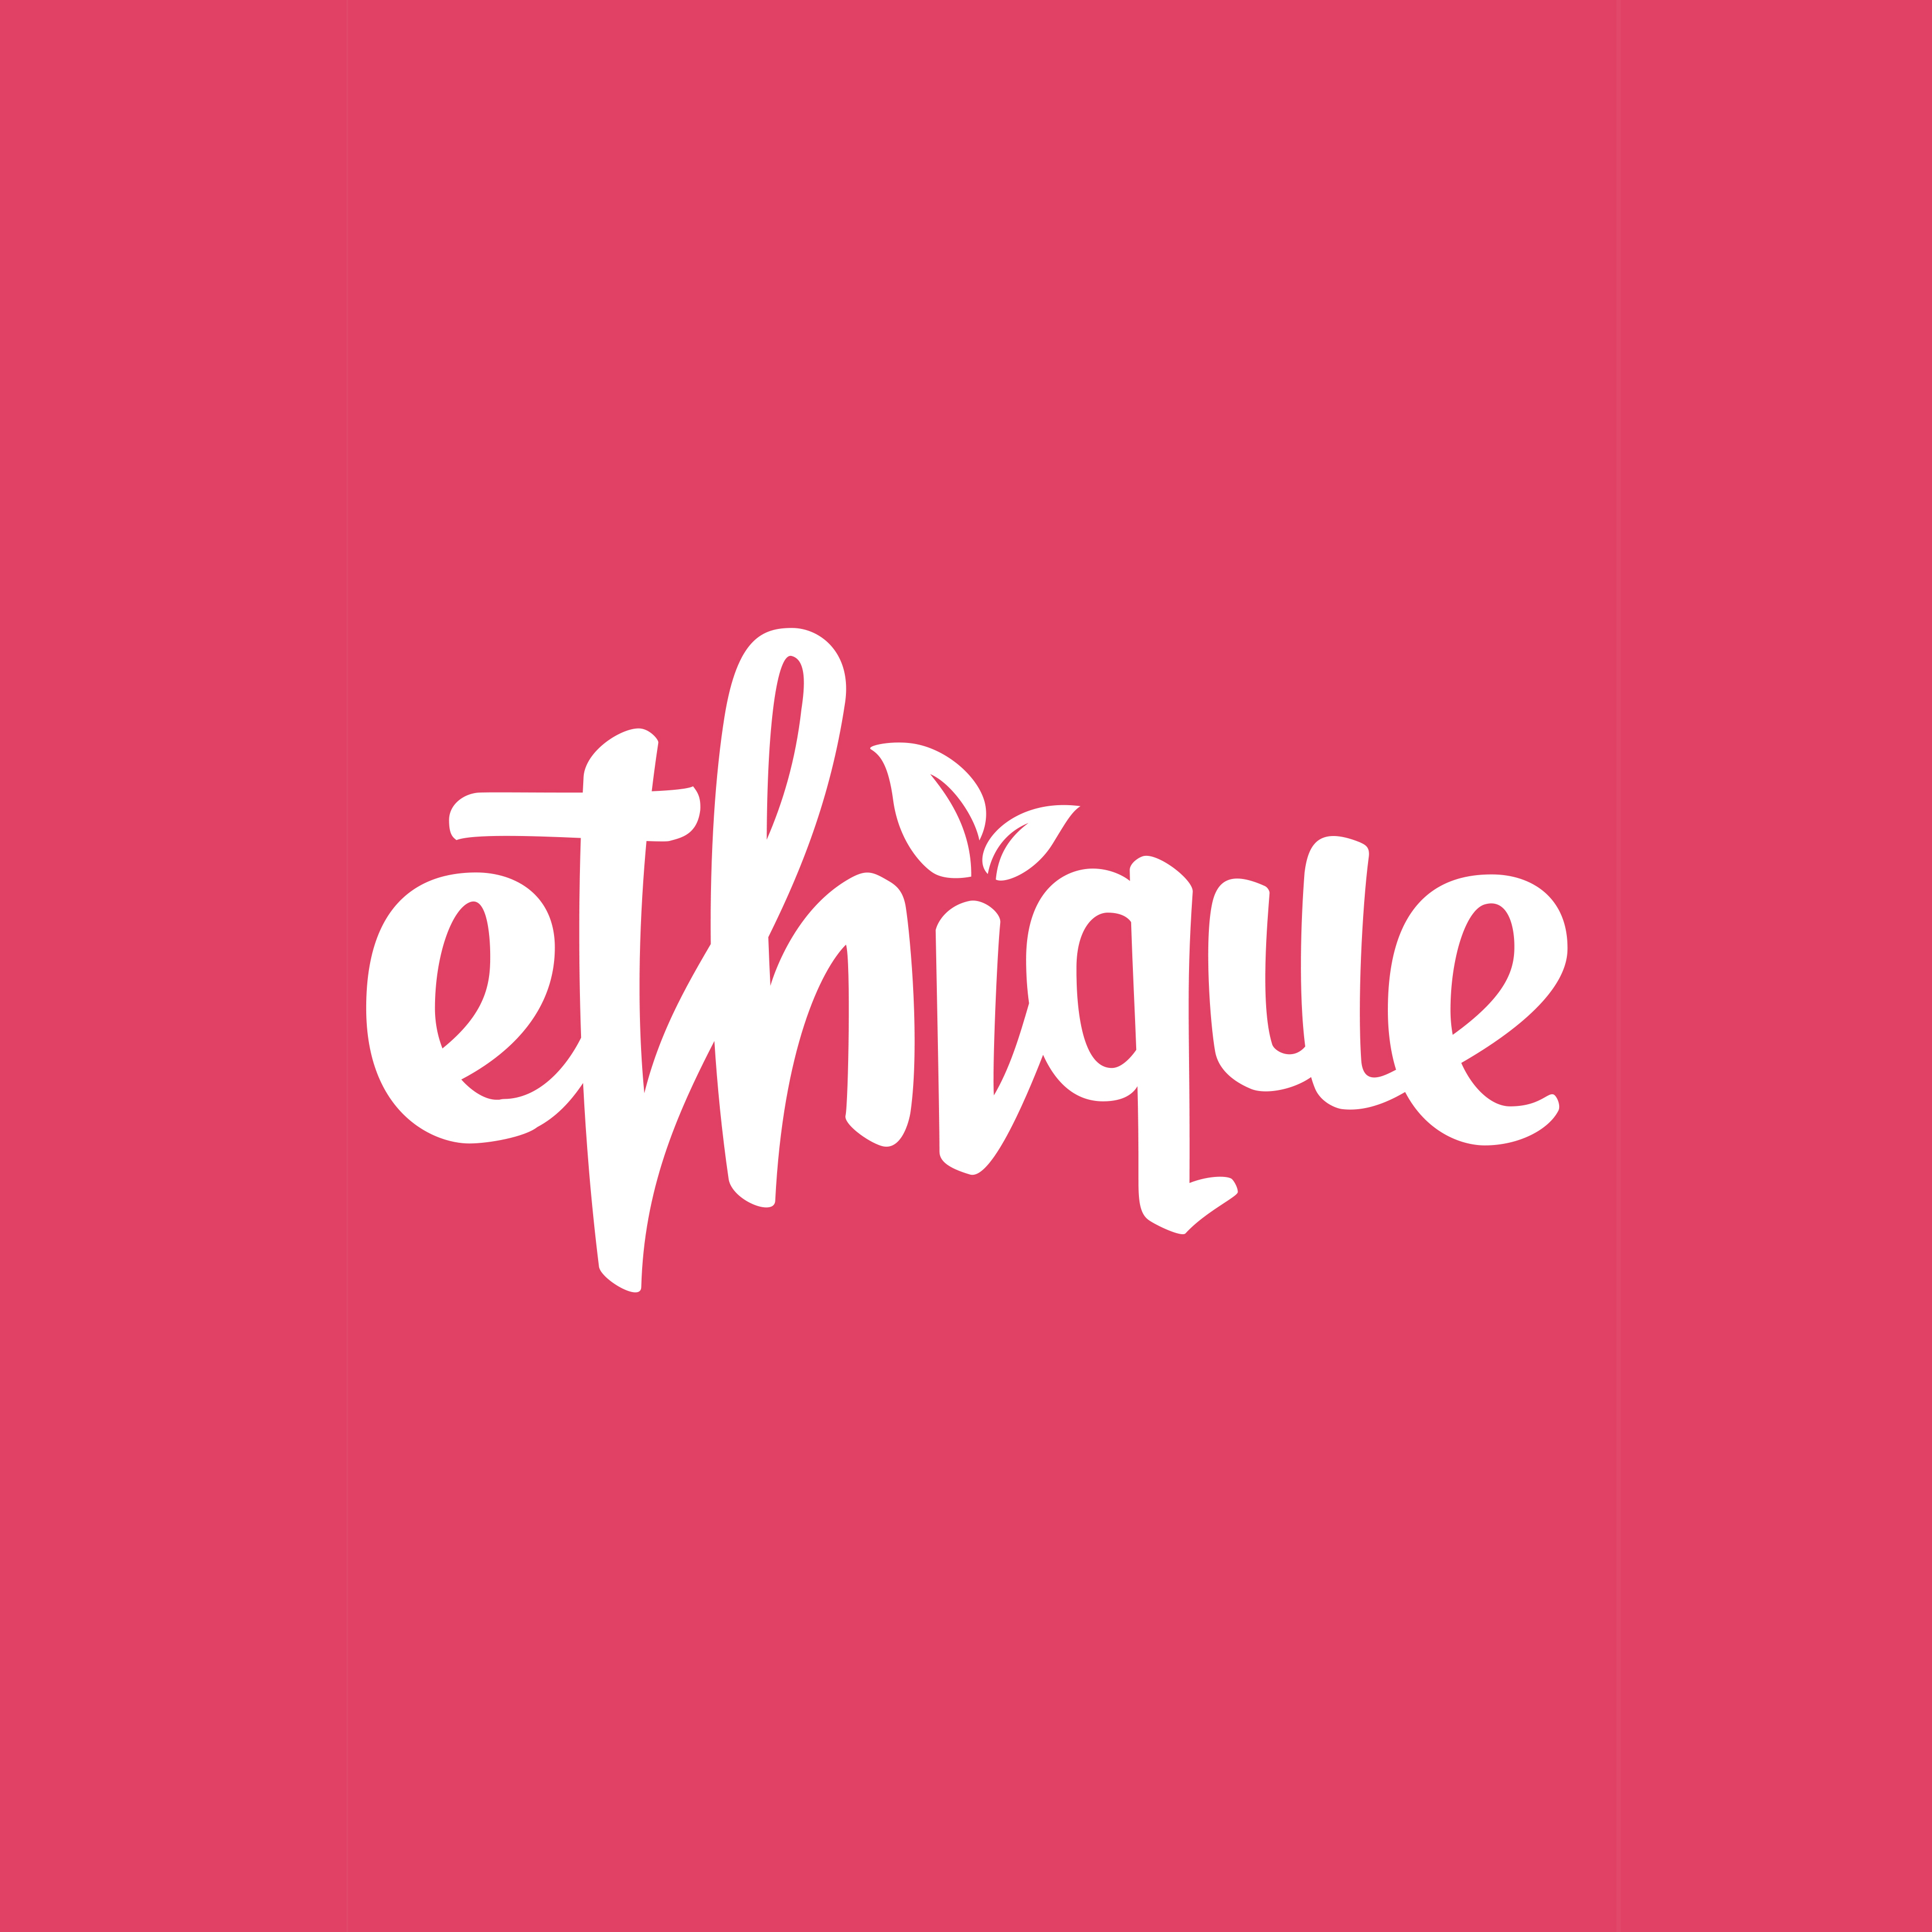 Profile pic for Ethique Limited